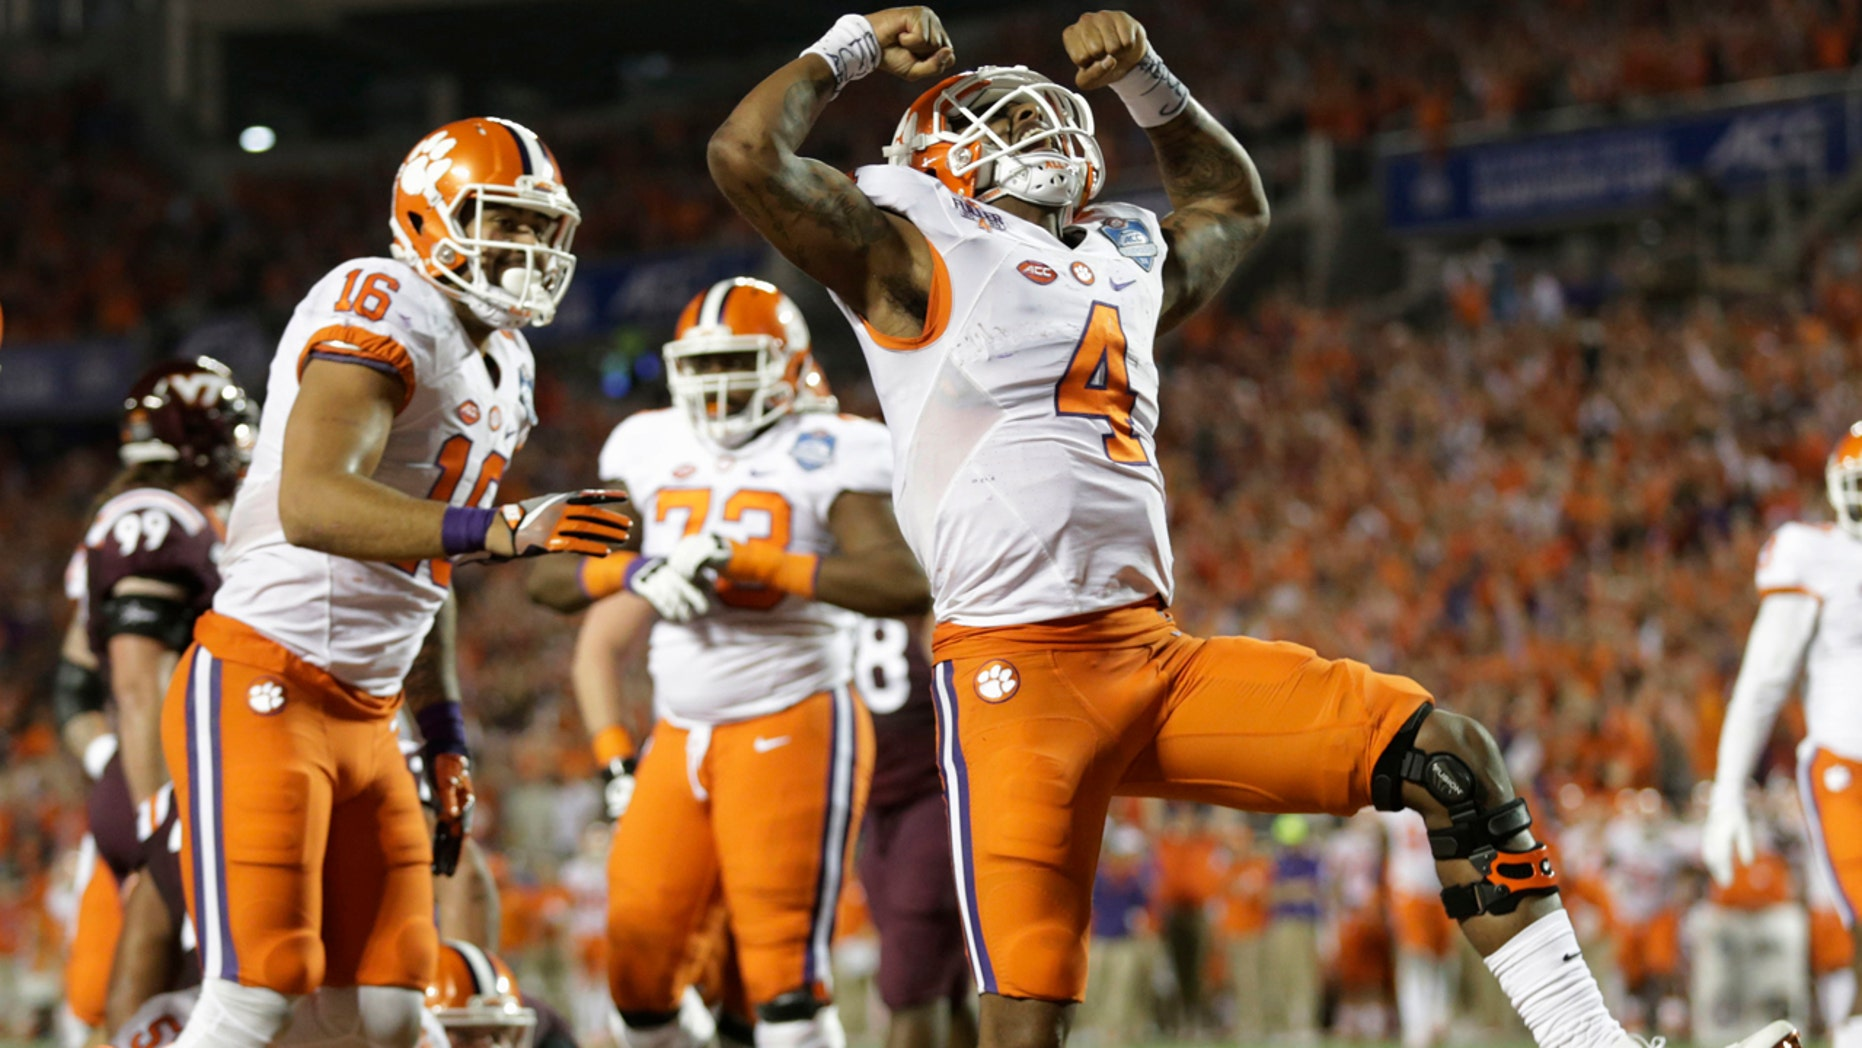 Clemson quarterback Deshaun Watson (4) celebrates his touchdown, during the second half of the Atlantic Coast Conference championship NCAA college football game against Virginia Tech, Saturday, Dec. 3, 2016, in Orlando, Fla. (AP Photo/Willie J. Allen Jr.)